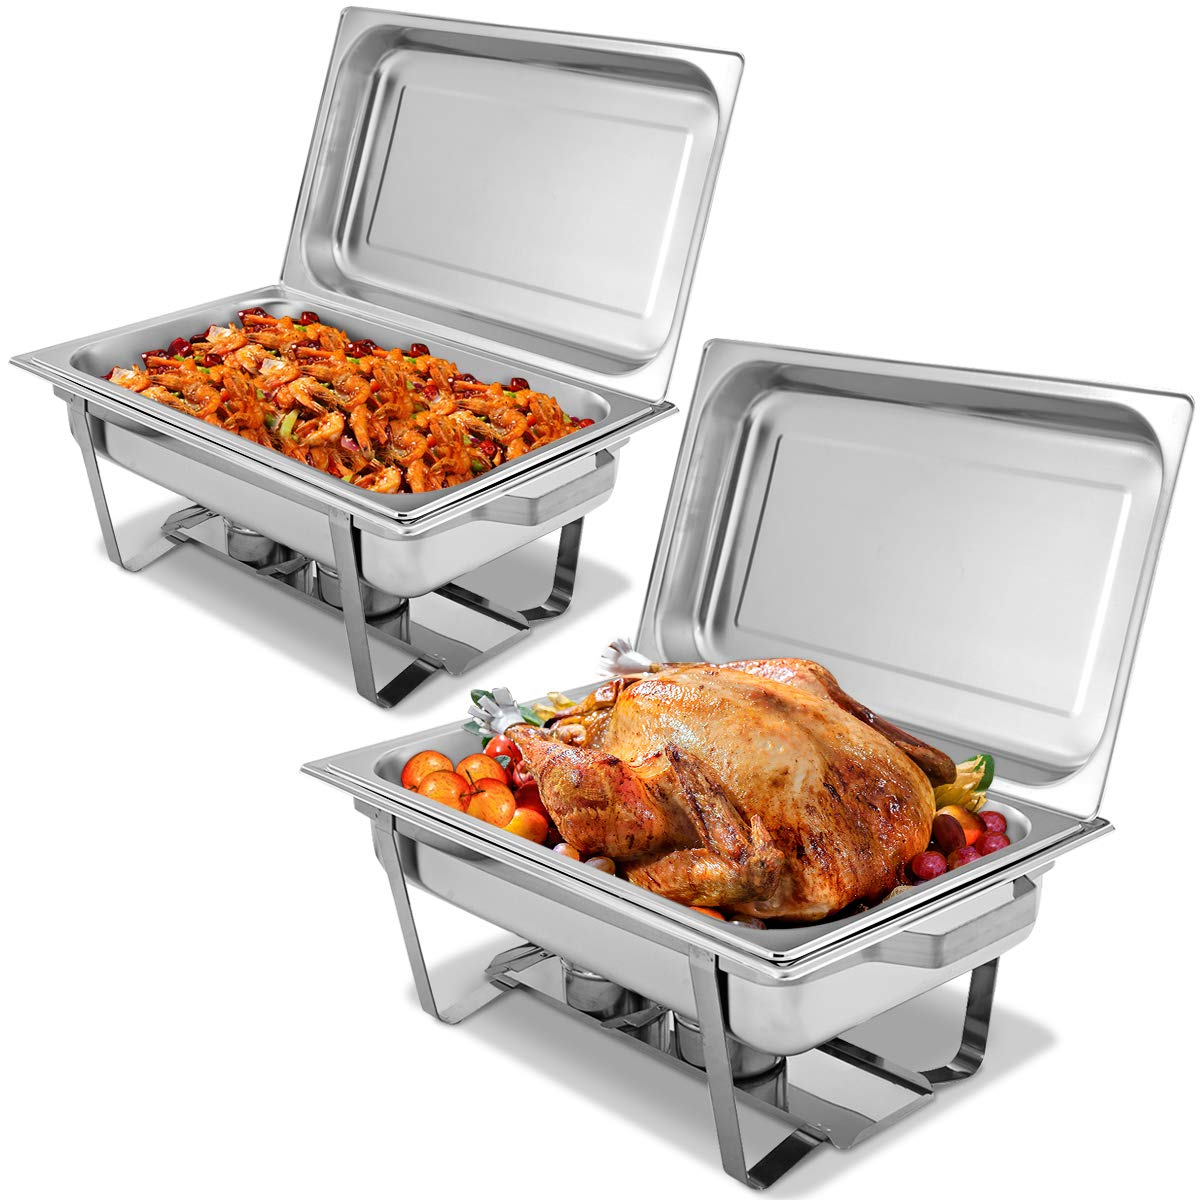 Giantex 2 Packs Chafing Dish 9 Quart Chafter Dishes Stainless Steel Chafing Dishes Rectangular Chafer Dish Set with Full Size Chafing Food Pan by Giantex